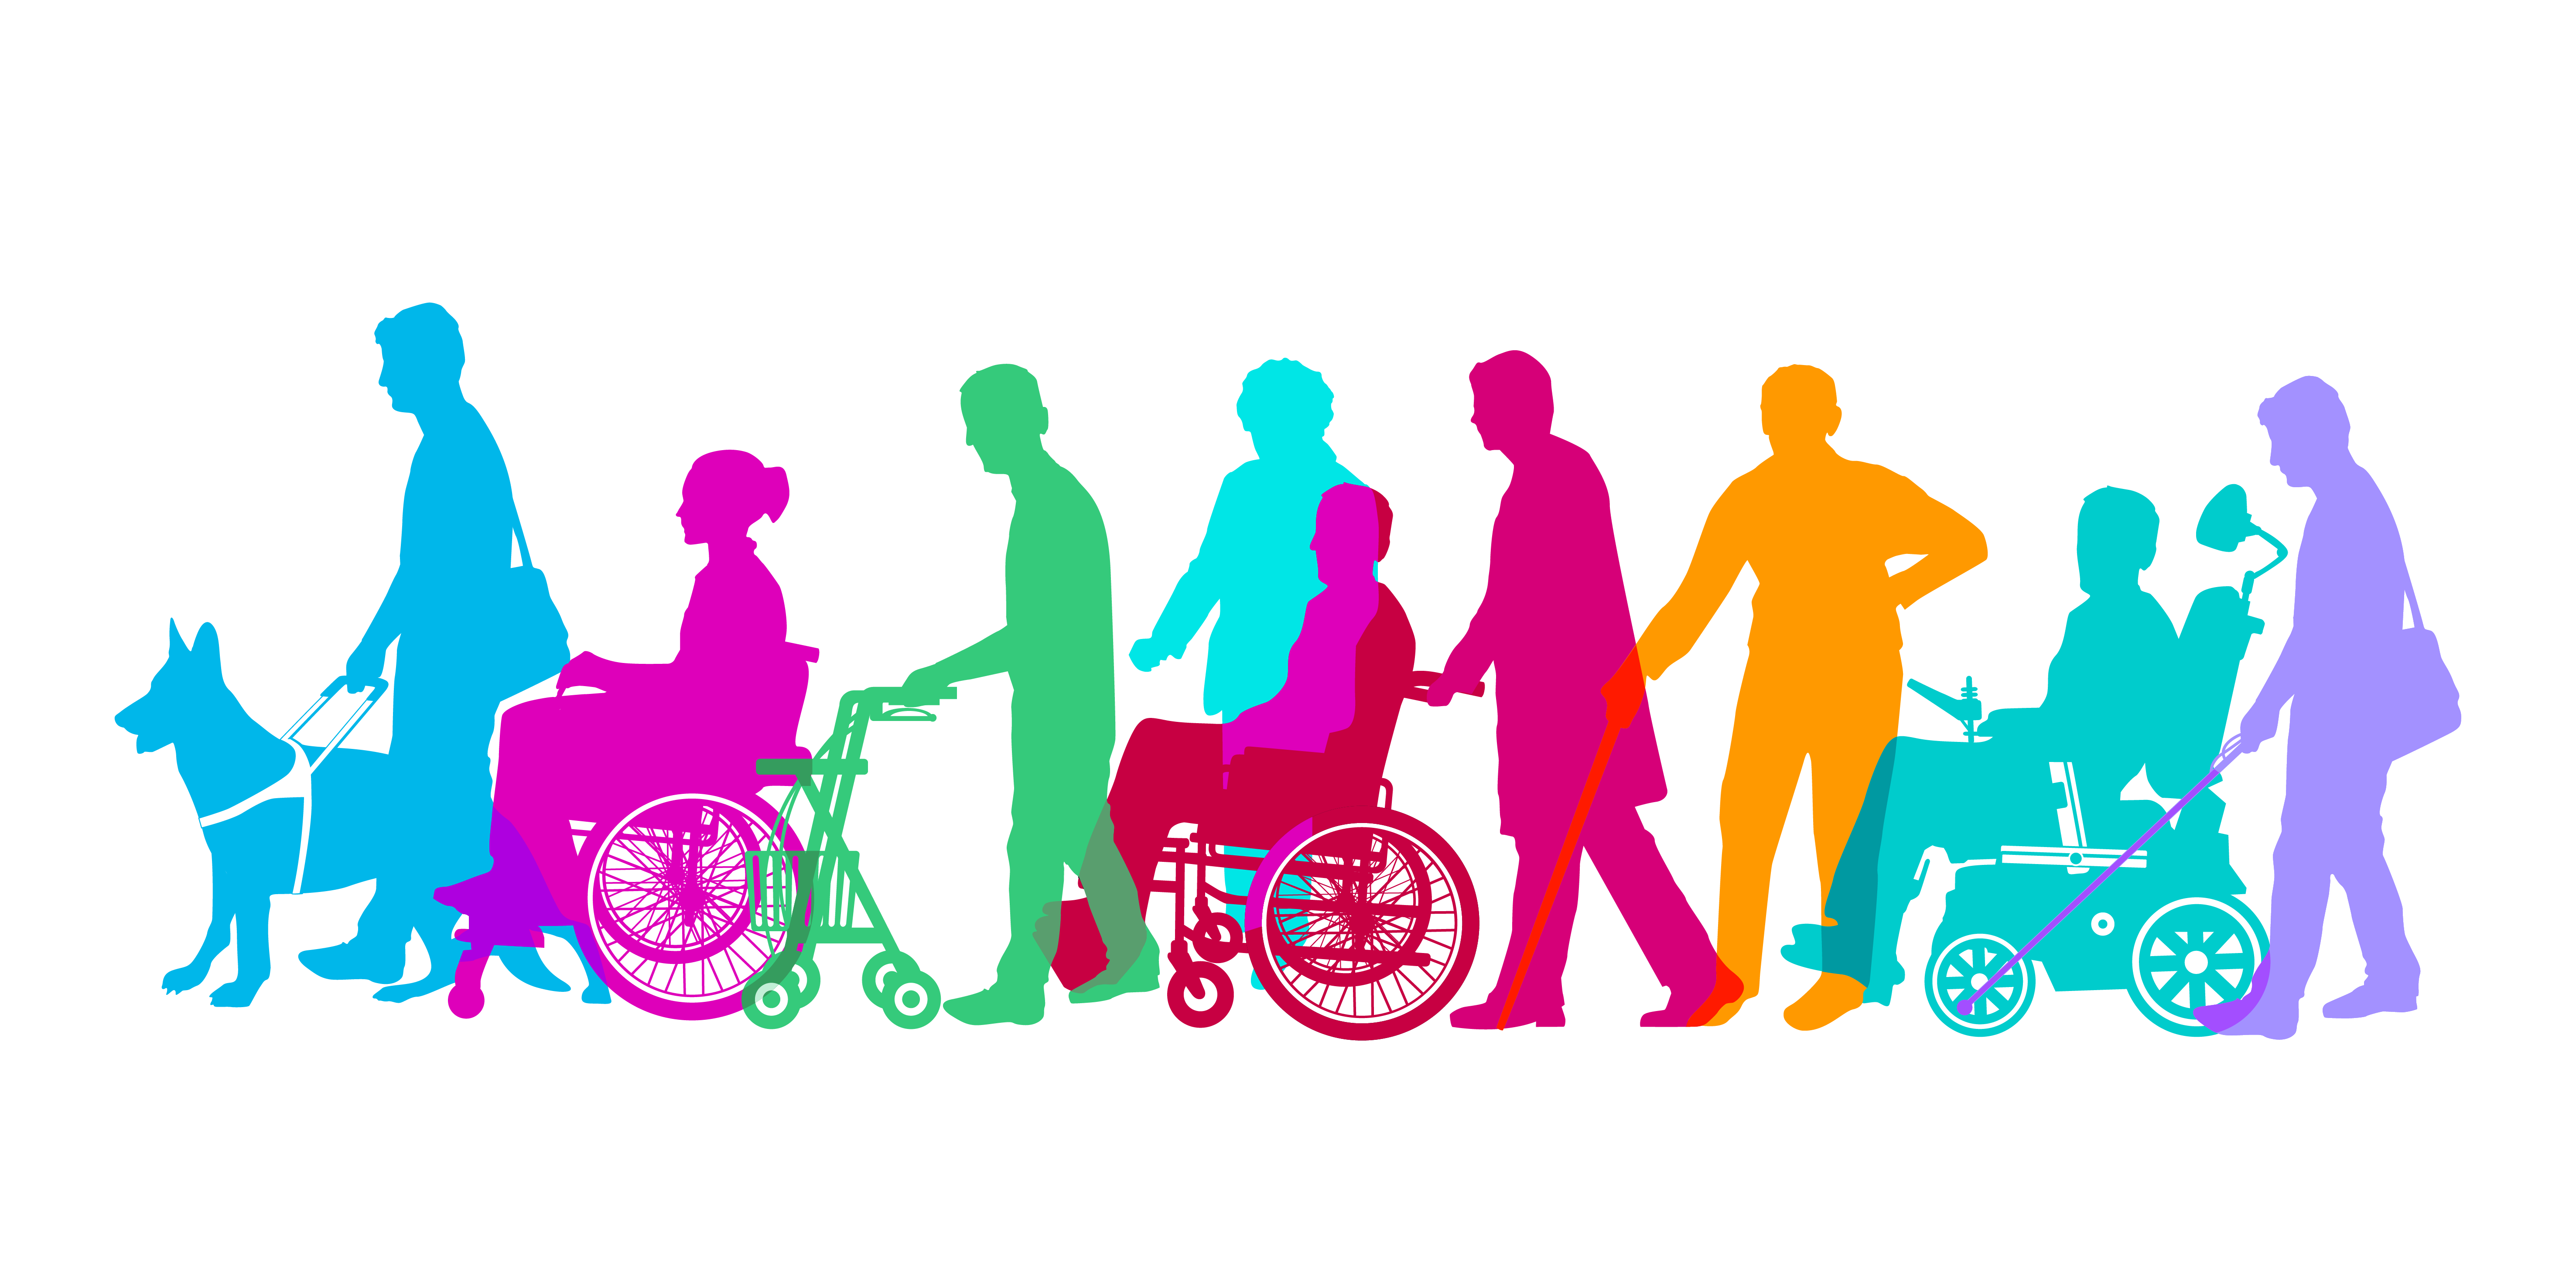 graphic of persons with disabilities